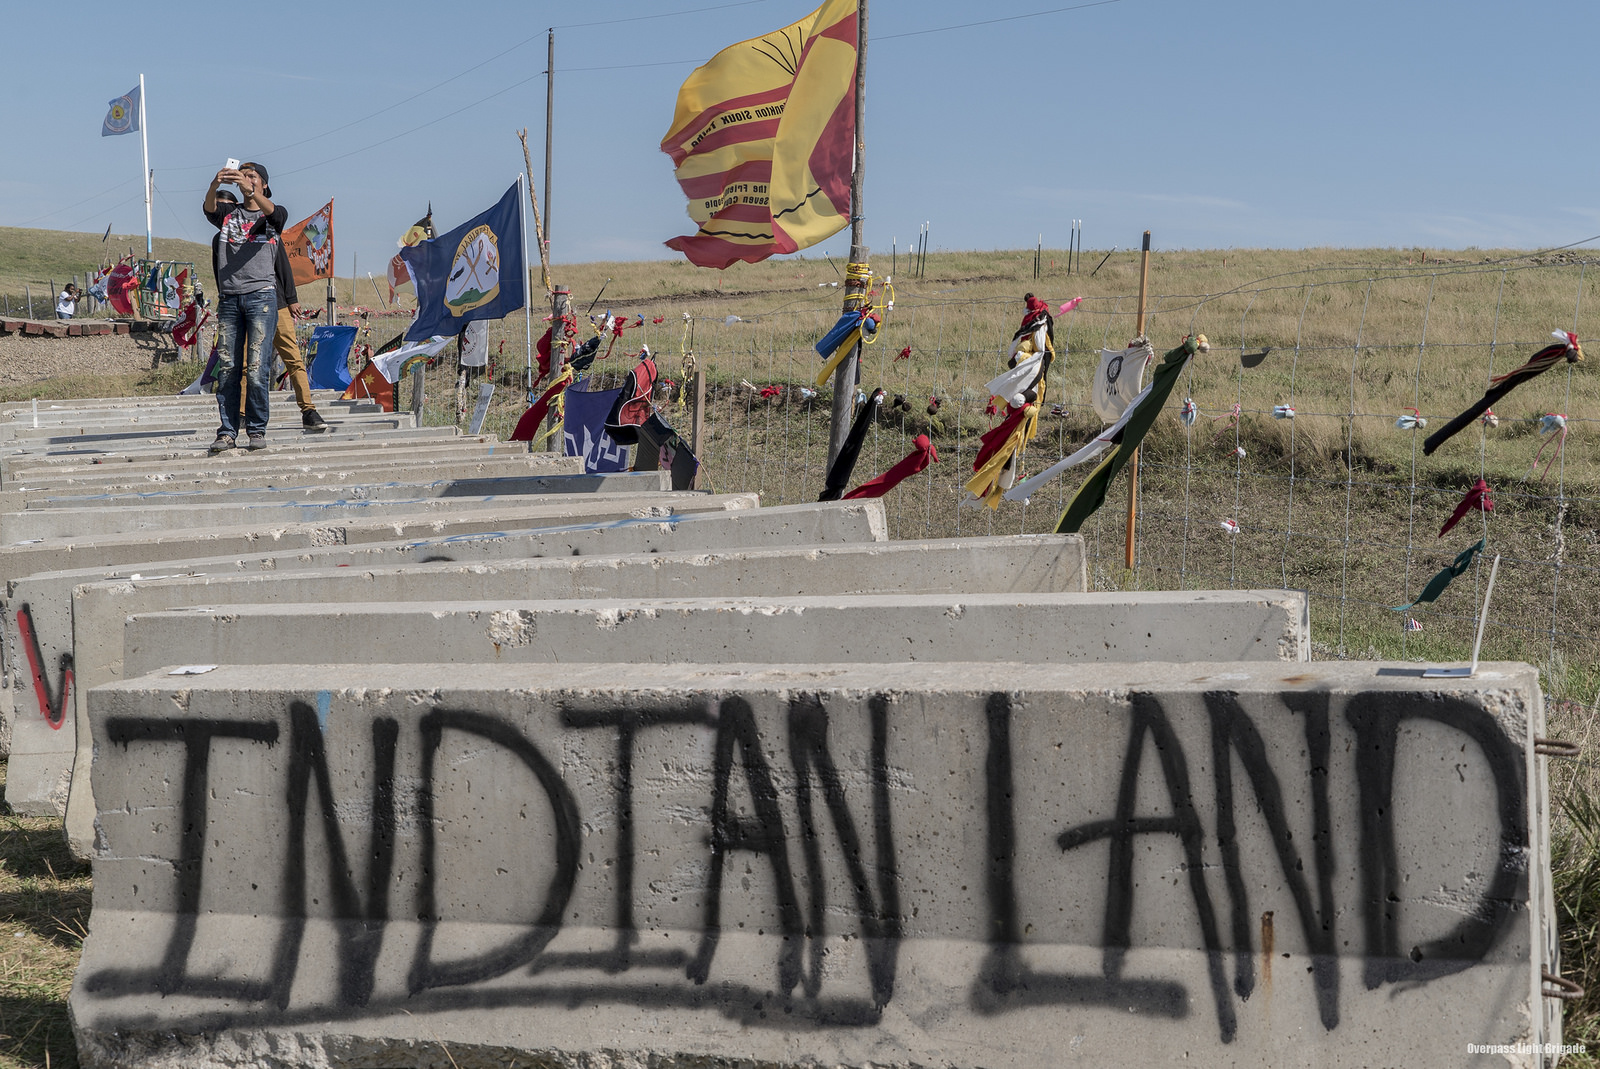 Sacred Stone Camp in North Dakota and the Standing Rock Sioux Reservation have become the staging area for protests along the proposed Dakota Access Pipeline route. Photo: Joe Brusky.